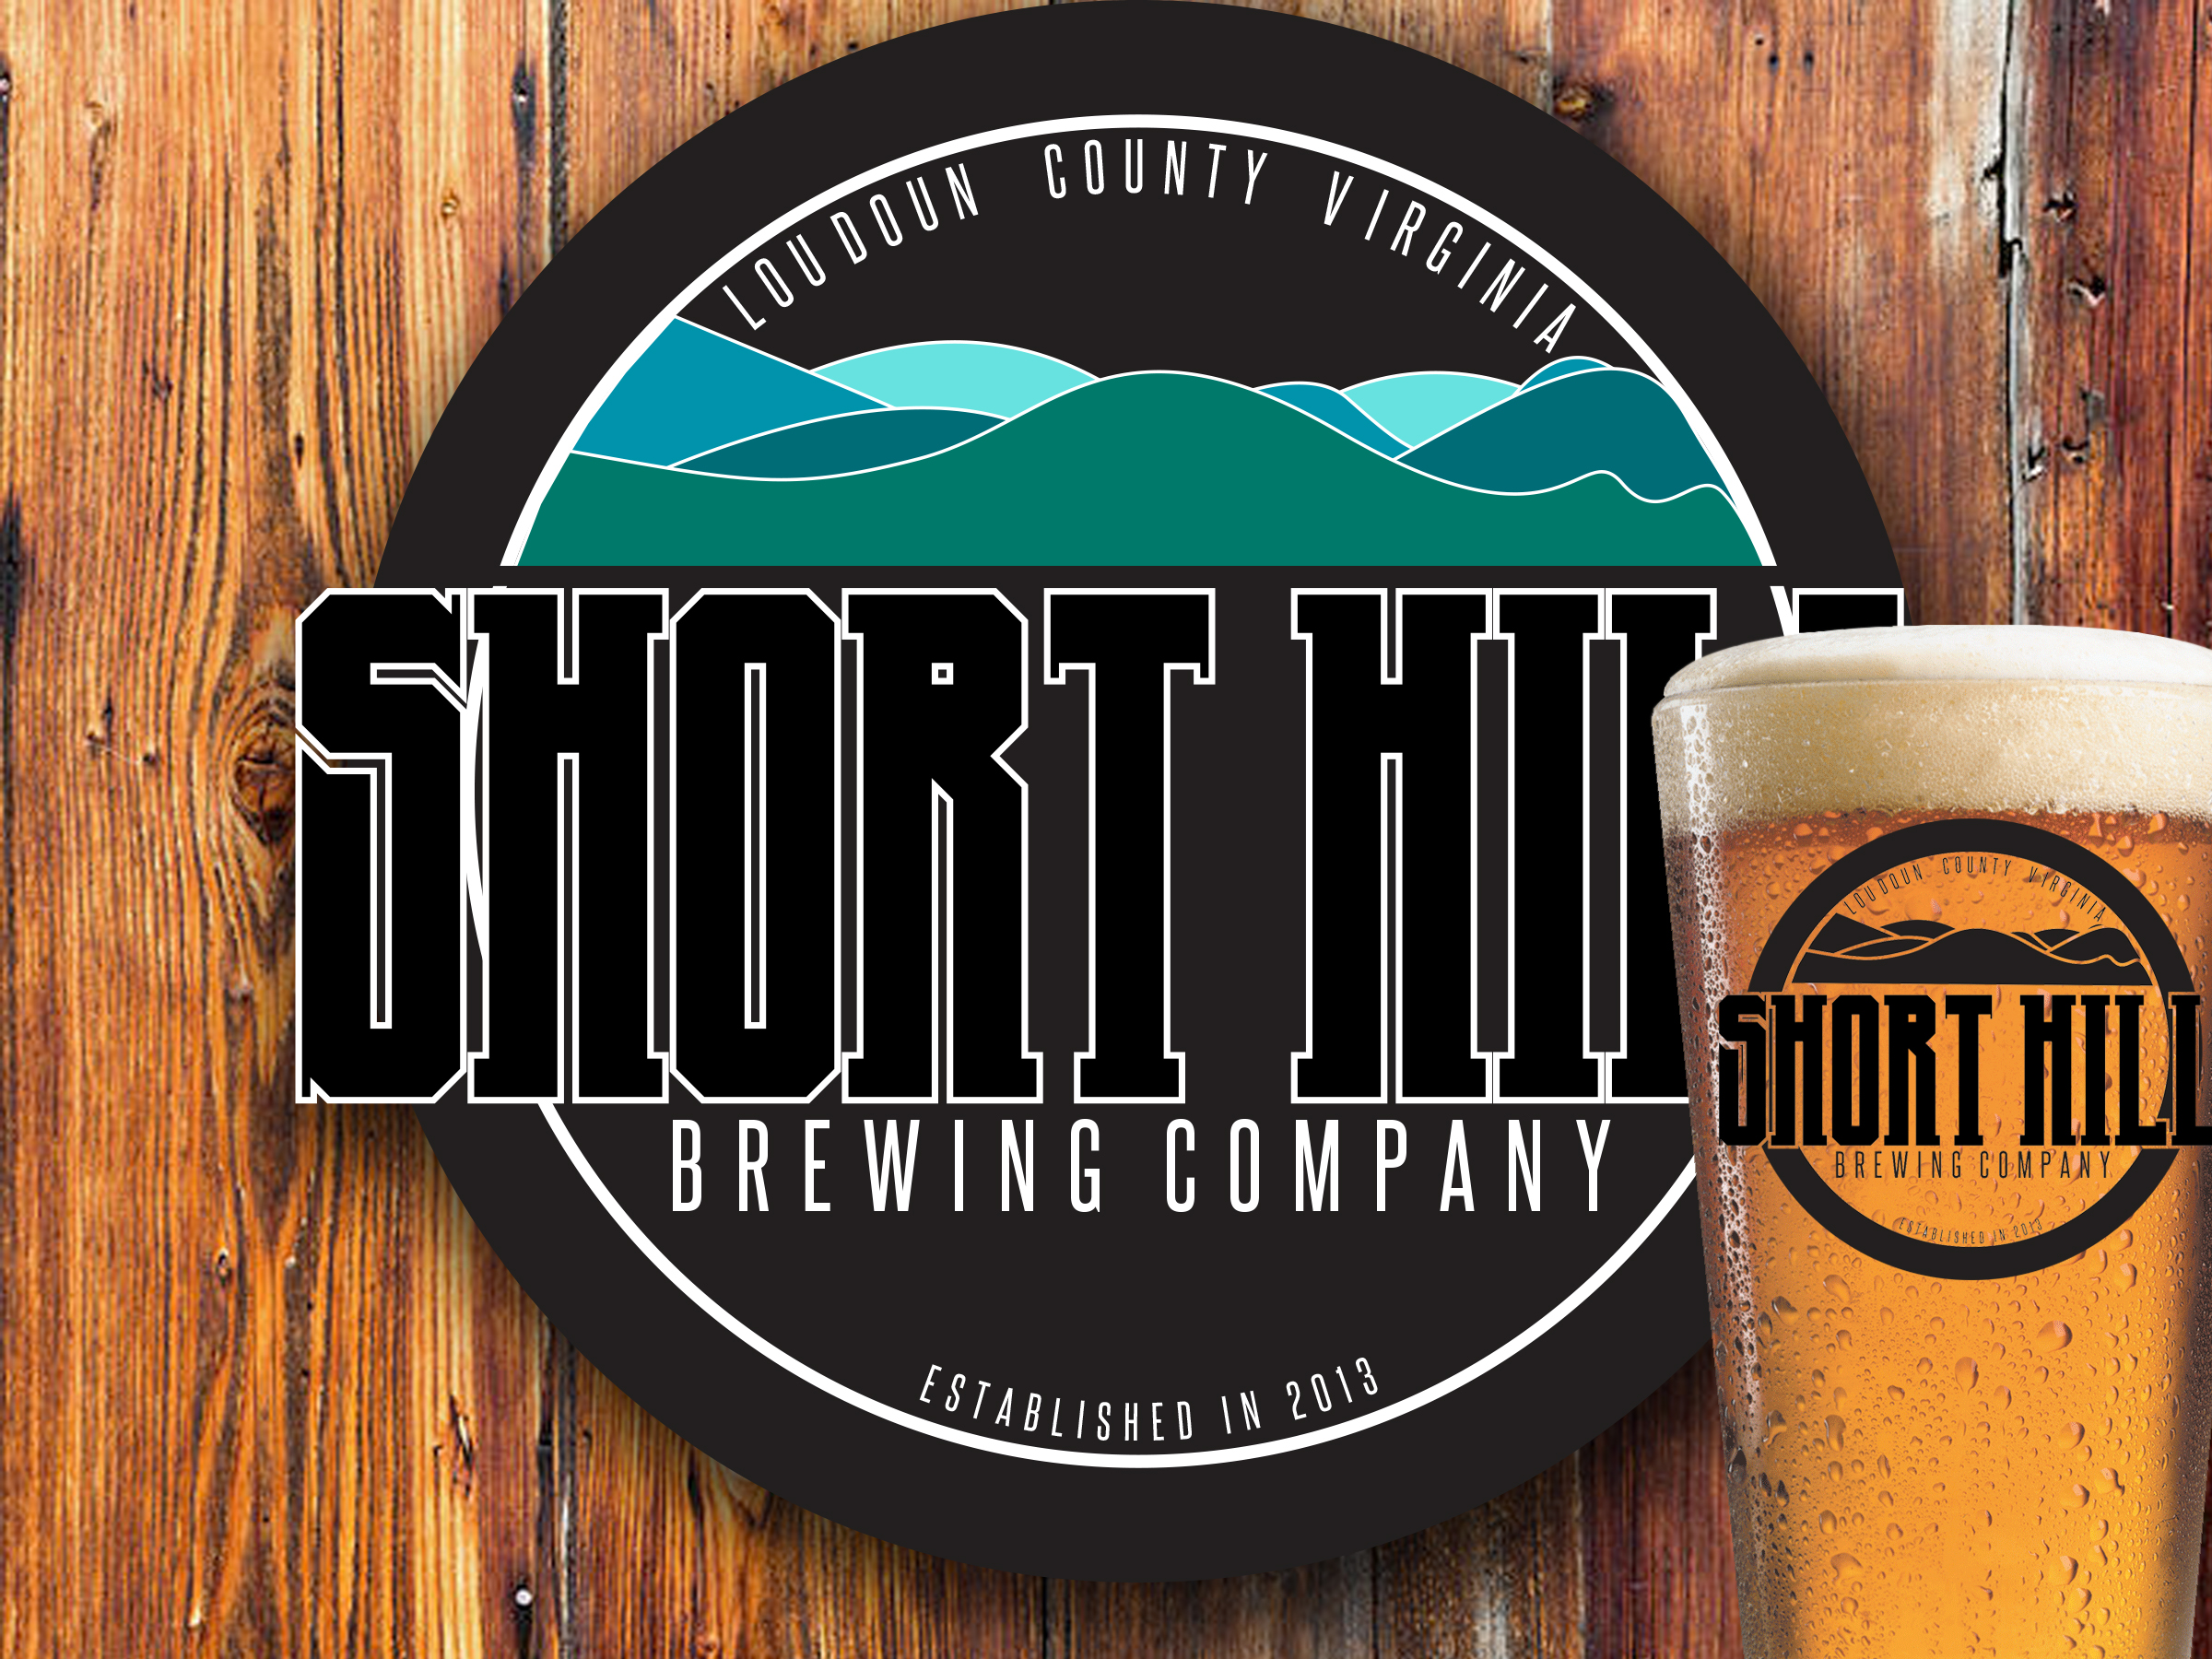 Logo Design by Dylan Savopoulos - Entry No. 62 in the Logo Design Contest Unique Logo Design Wanted for Short Hill Brewing Company.